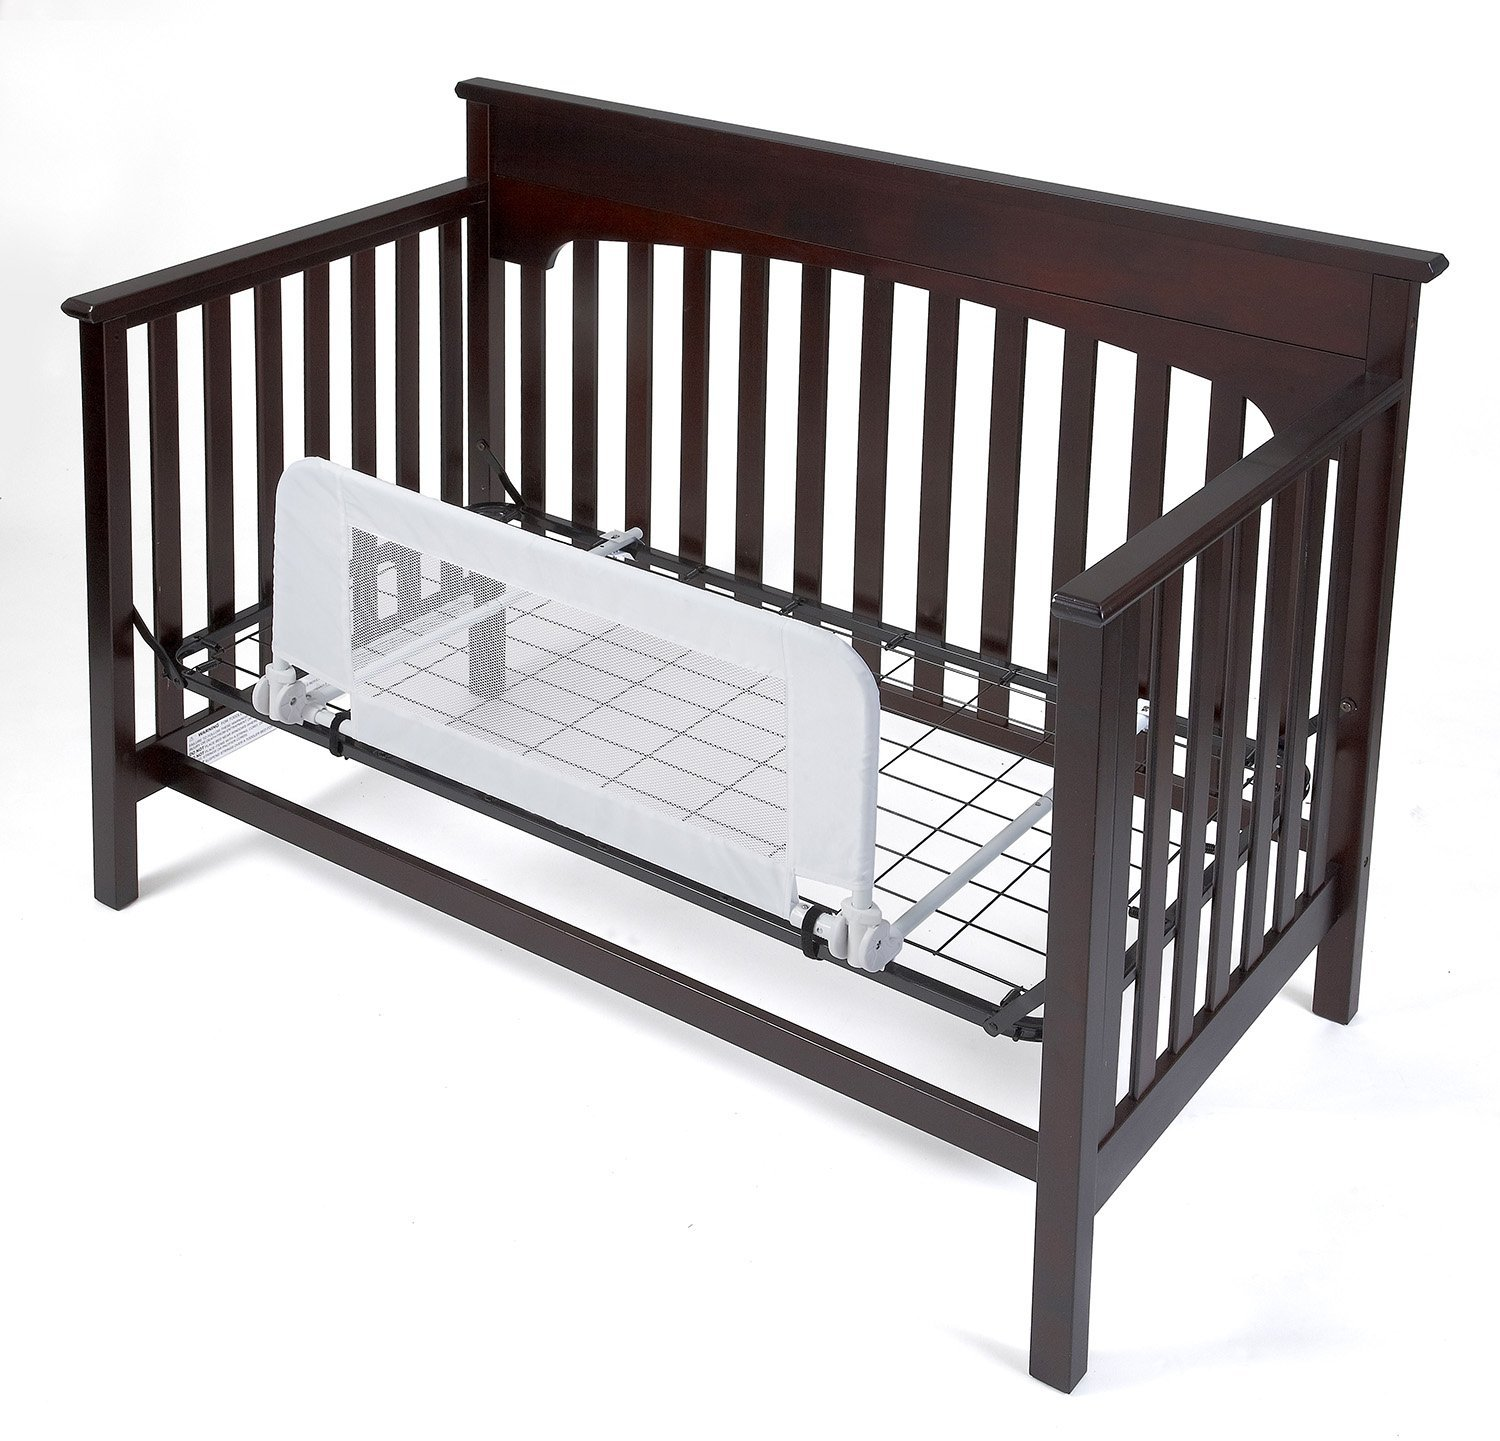 Crib for babies online india - Buy Dexbaby Safe Sleeper Convertible Crib Bed Rail White Online At Low Prices In India Amazon In